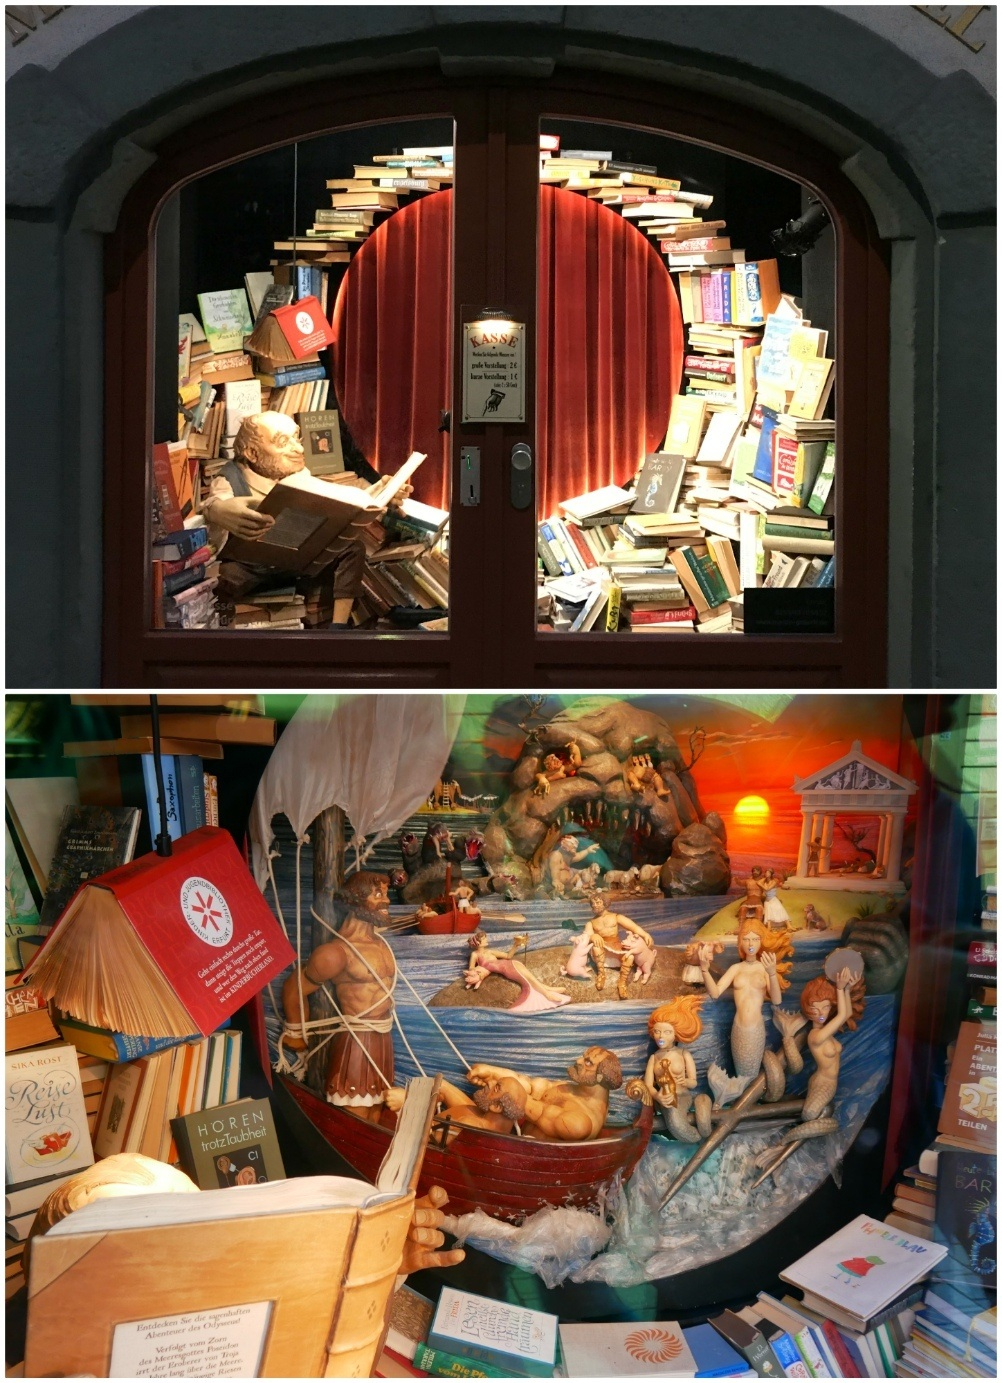 Puppet show in Erfurt, Thuringia, Germany